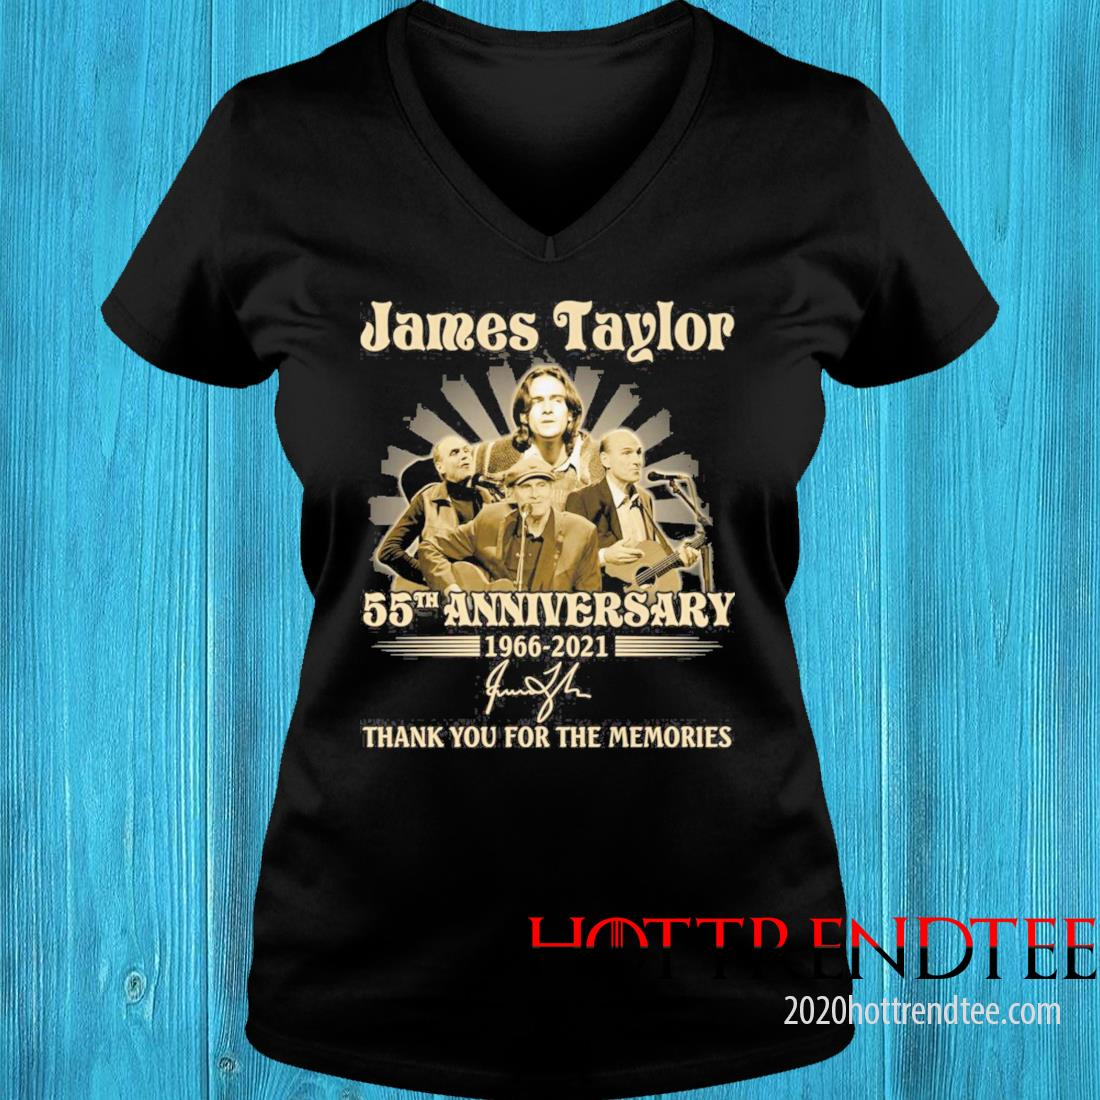 James Taylor 55th Anniversary 1966 2021 Signatures Thank You For The Memories Shirt v-neck tee